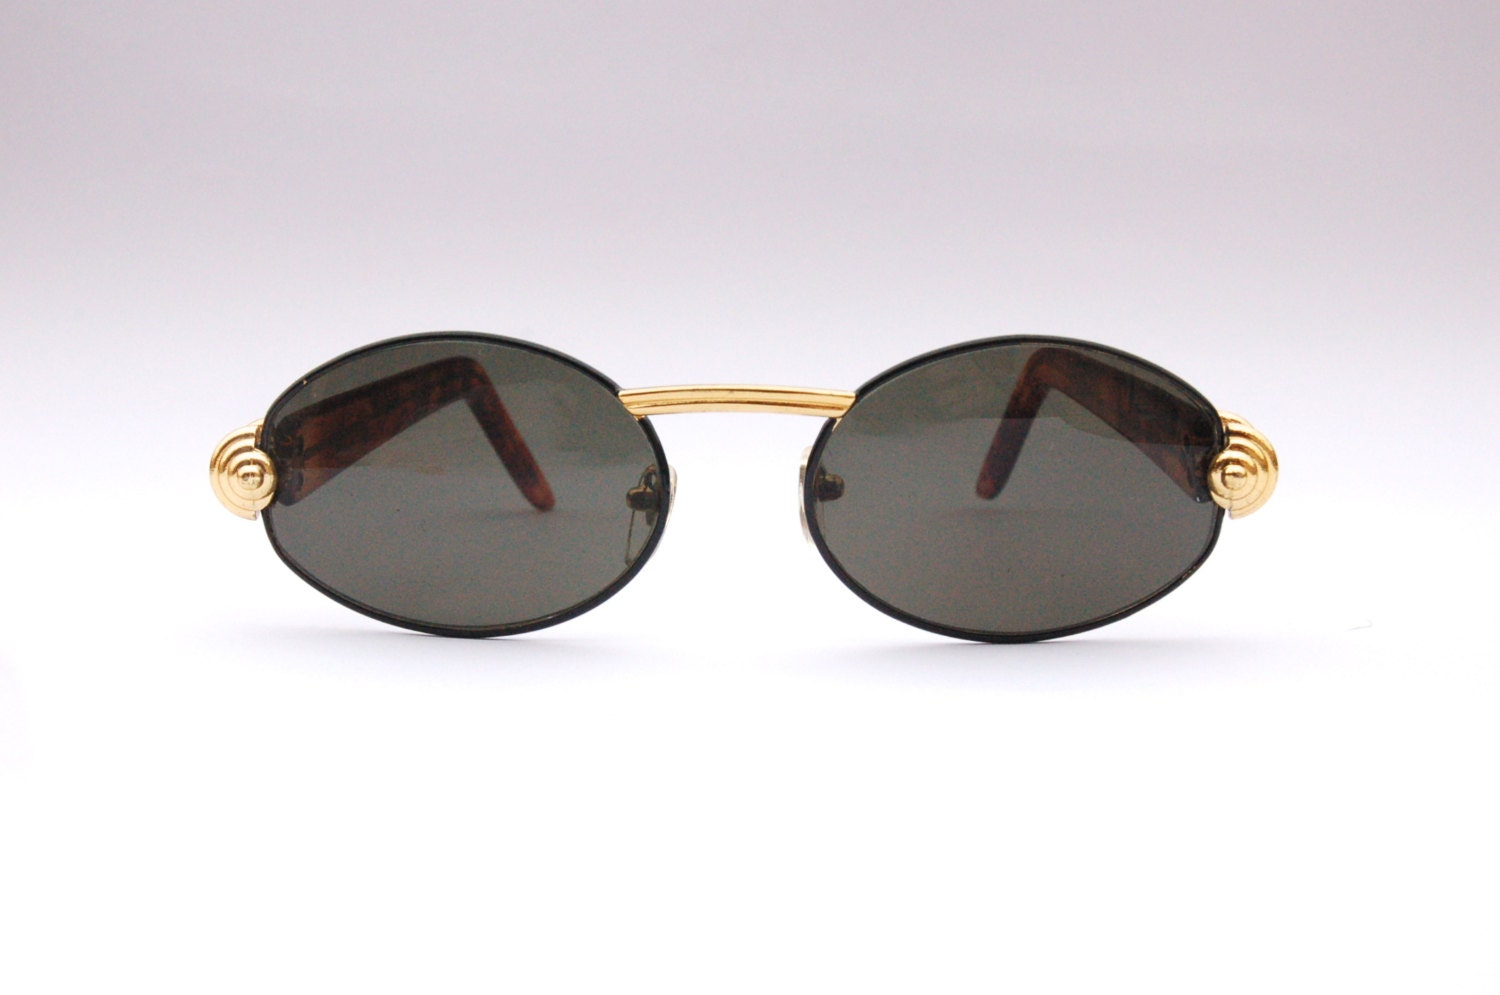 Vintage 90s Round Sunglasses / Oval Shades / w Gold Tone and